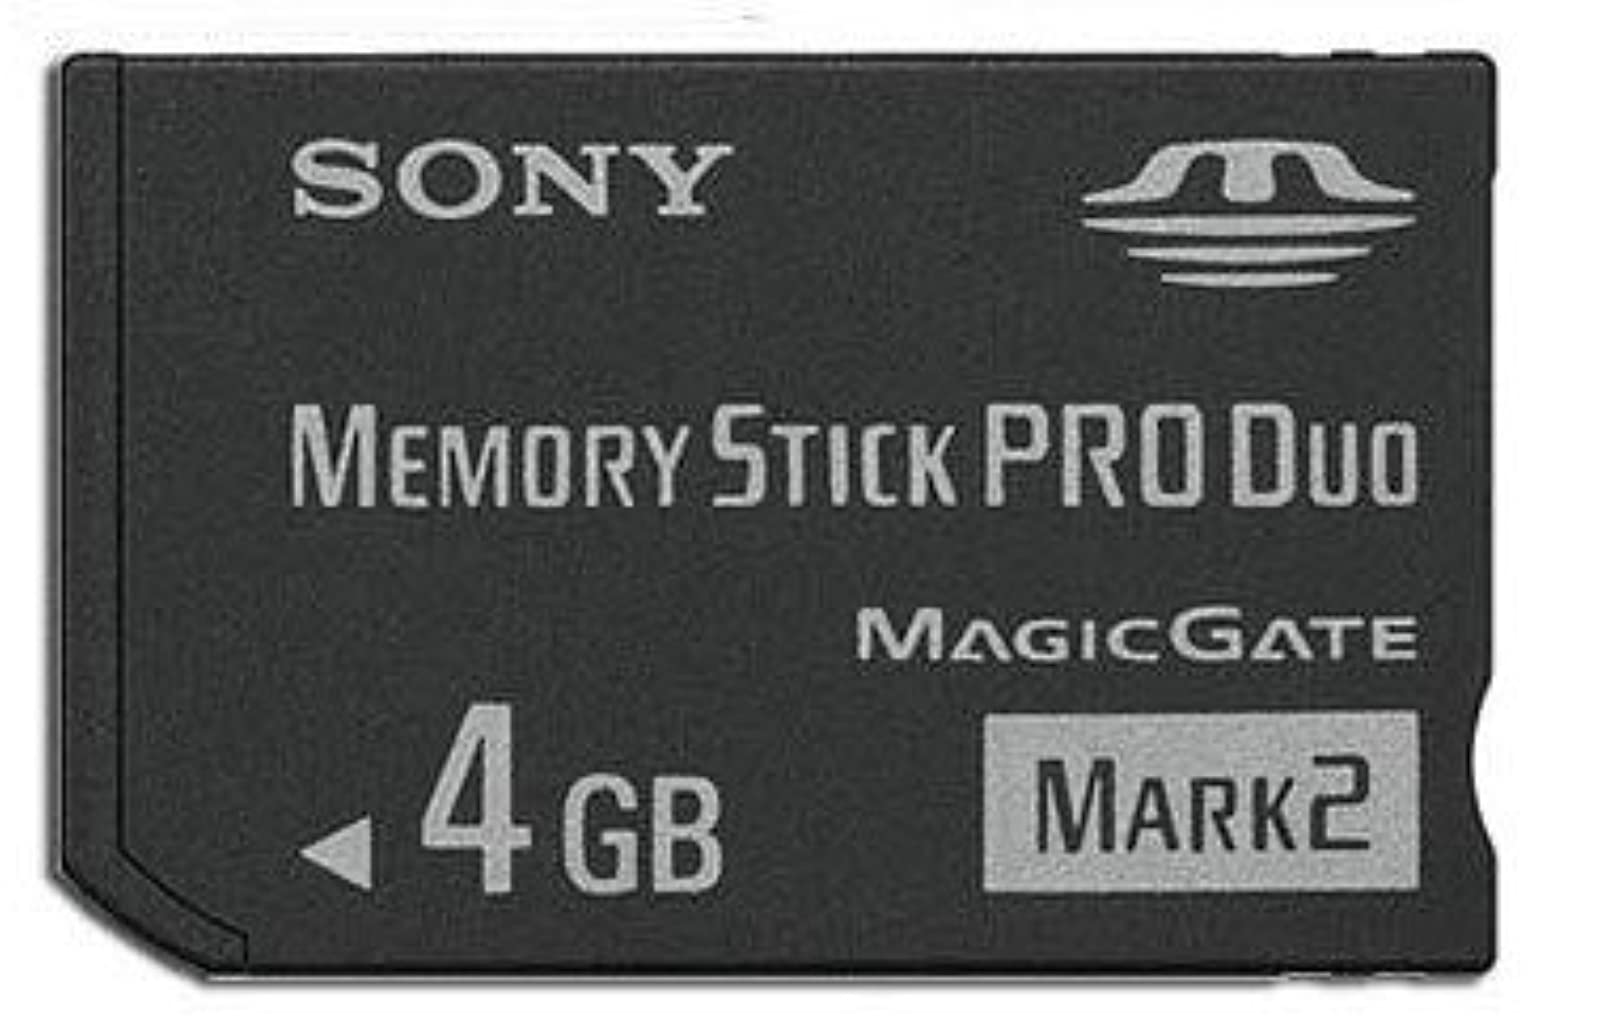 4GB 4G Ms Memory Stick Pro Duo Card For Sony PSP